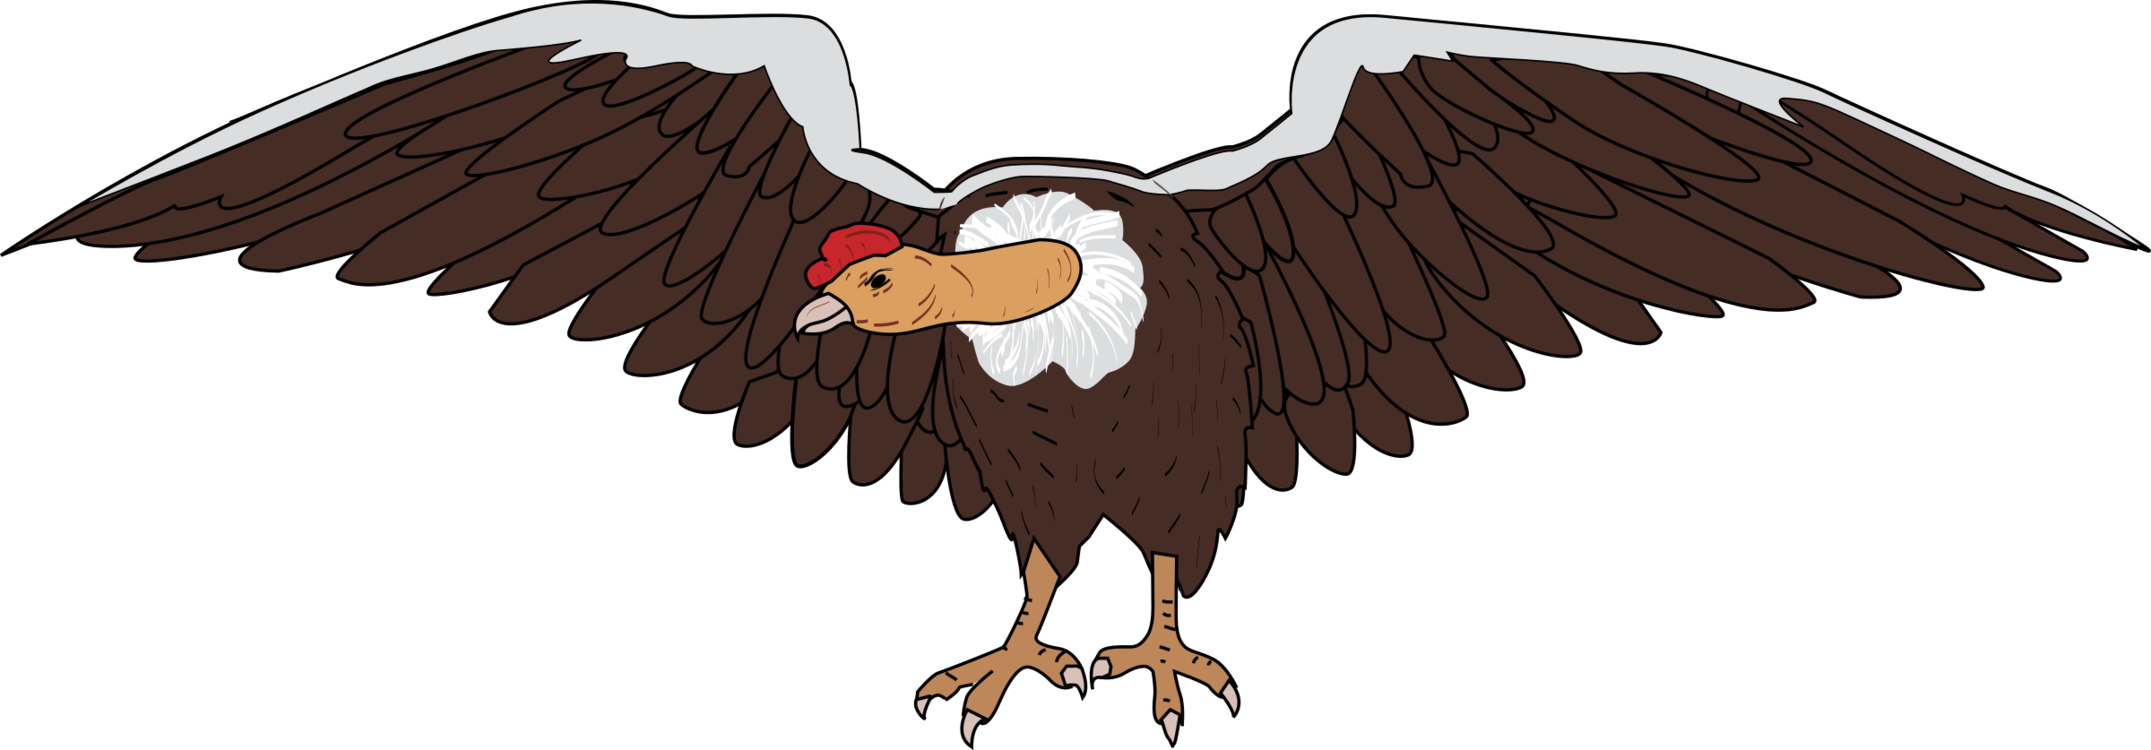 Condor drawing andean. Bird the california vulture